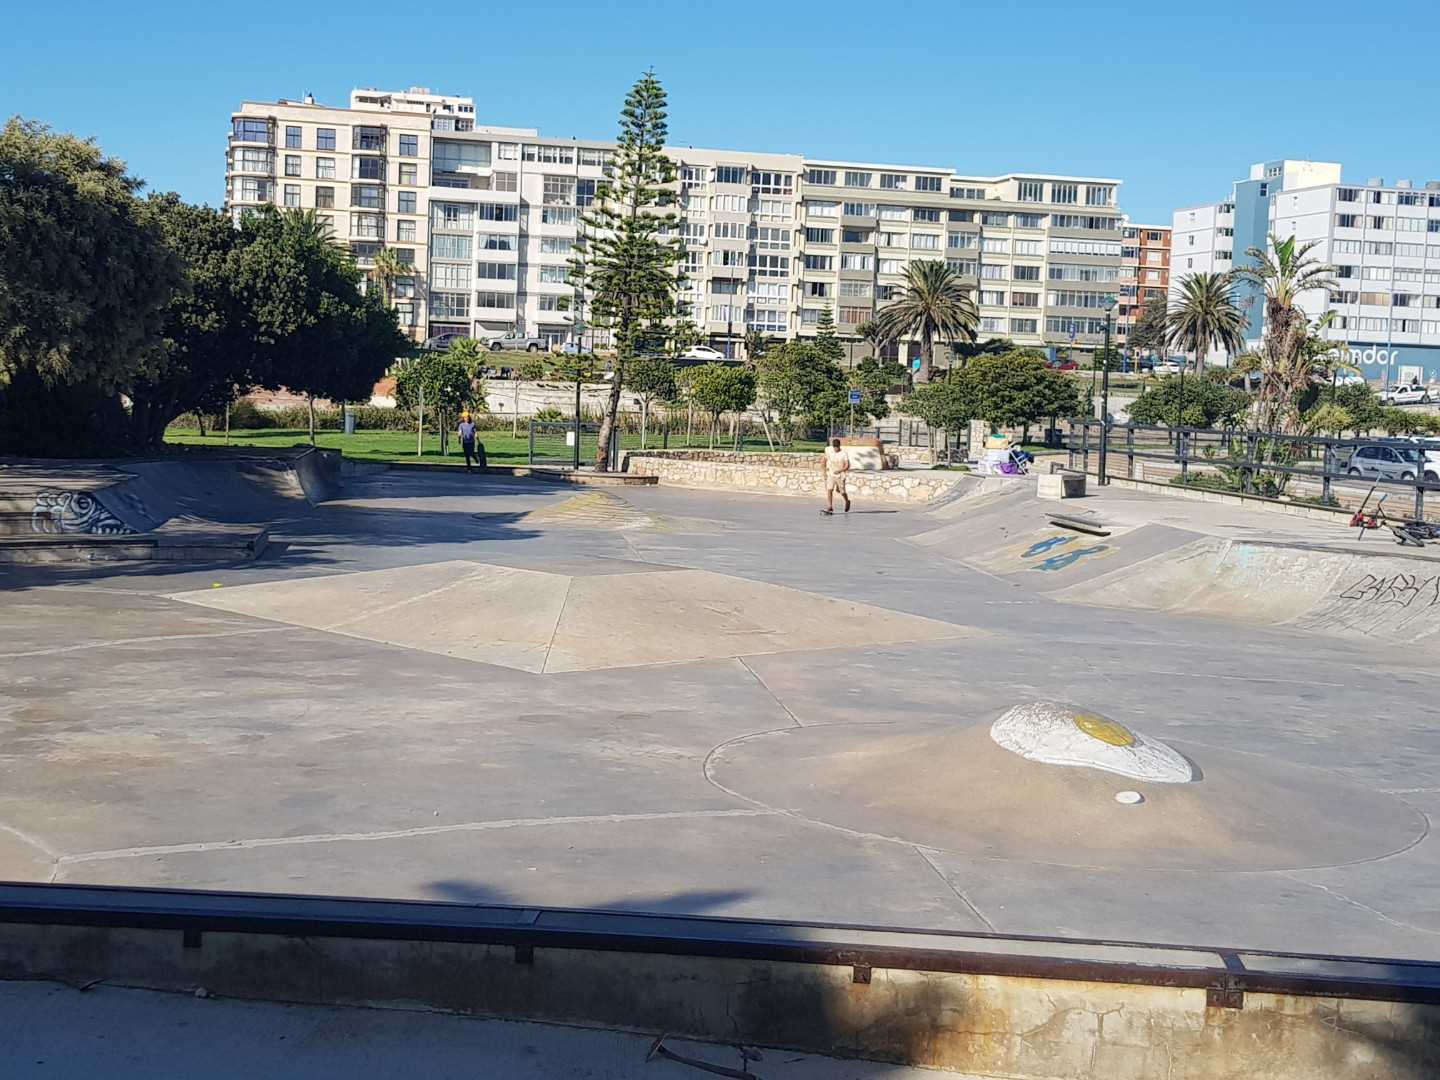 Skate board park by Kings Beach